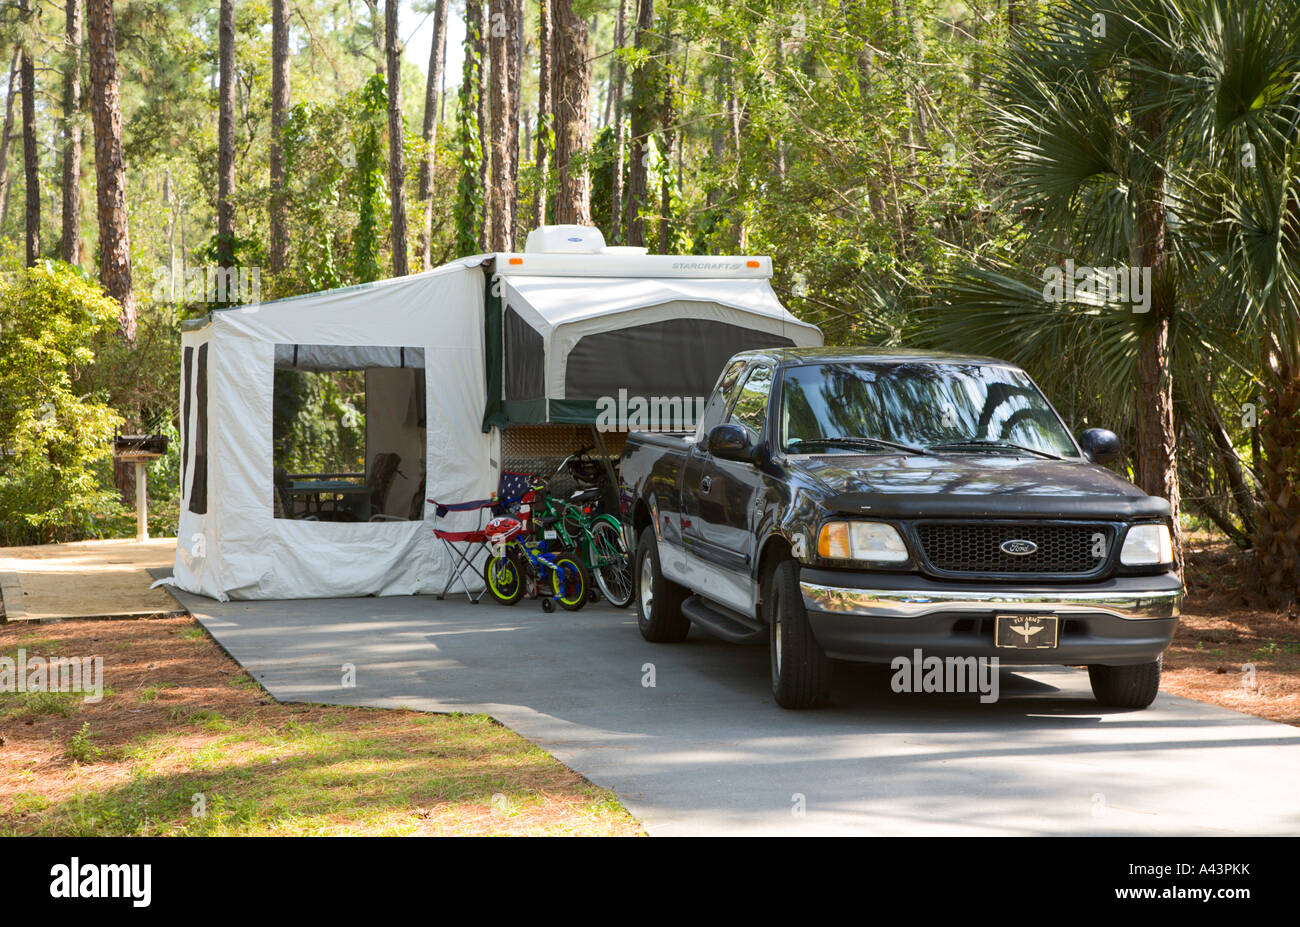 Pop Up Camper At Campsite In Fort Wilderness Resort In